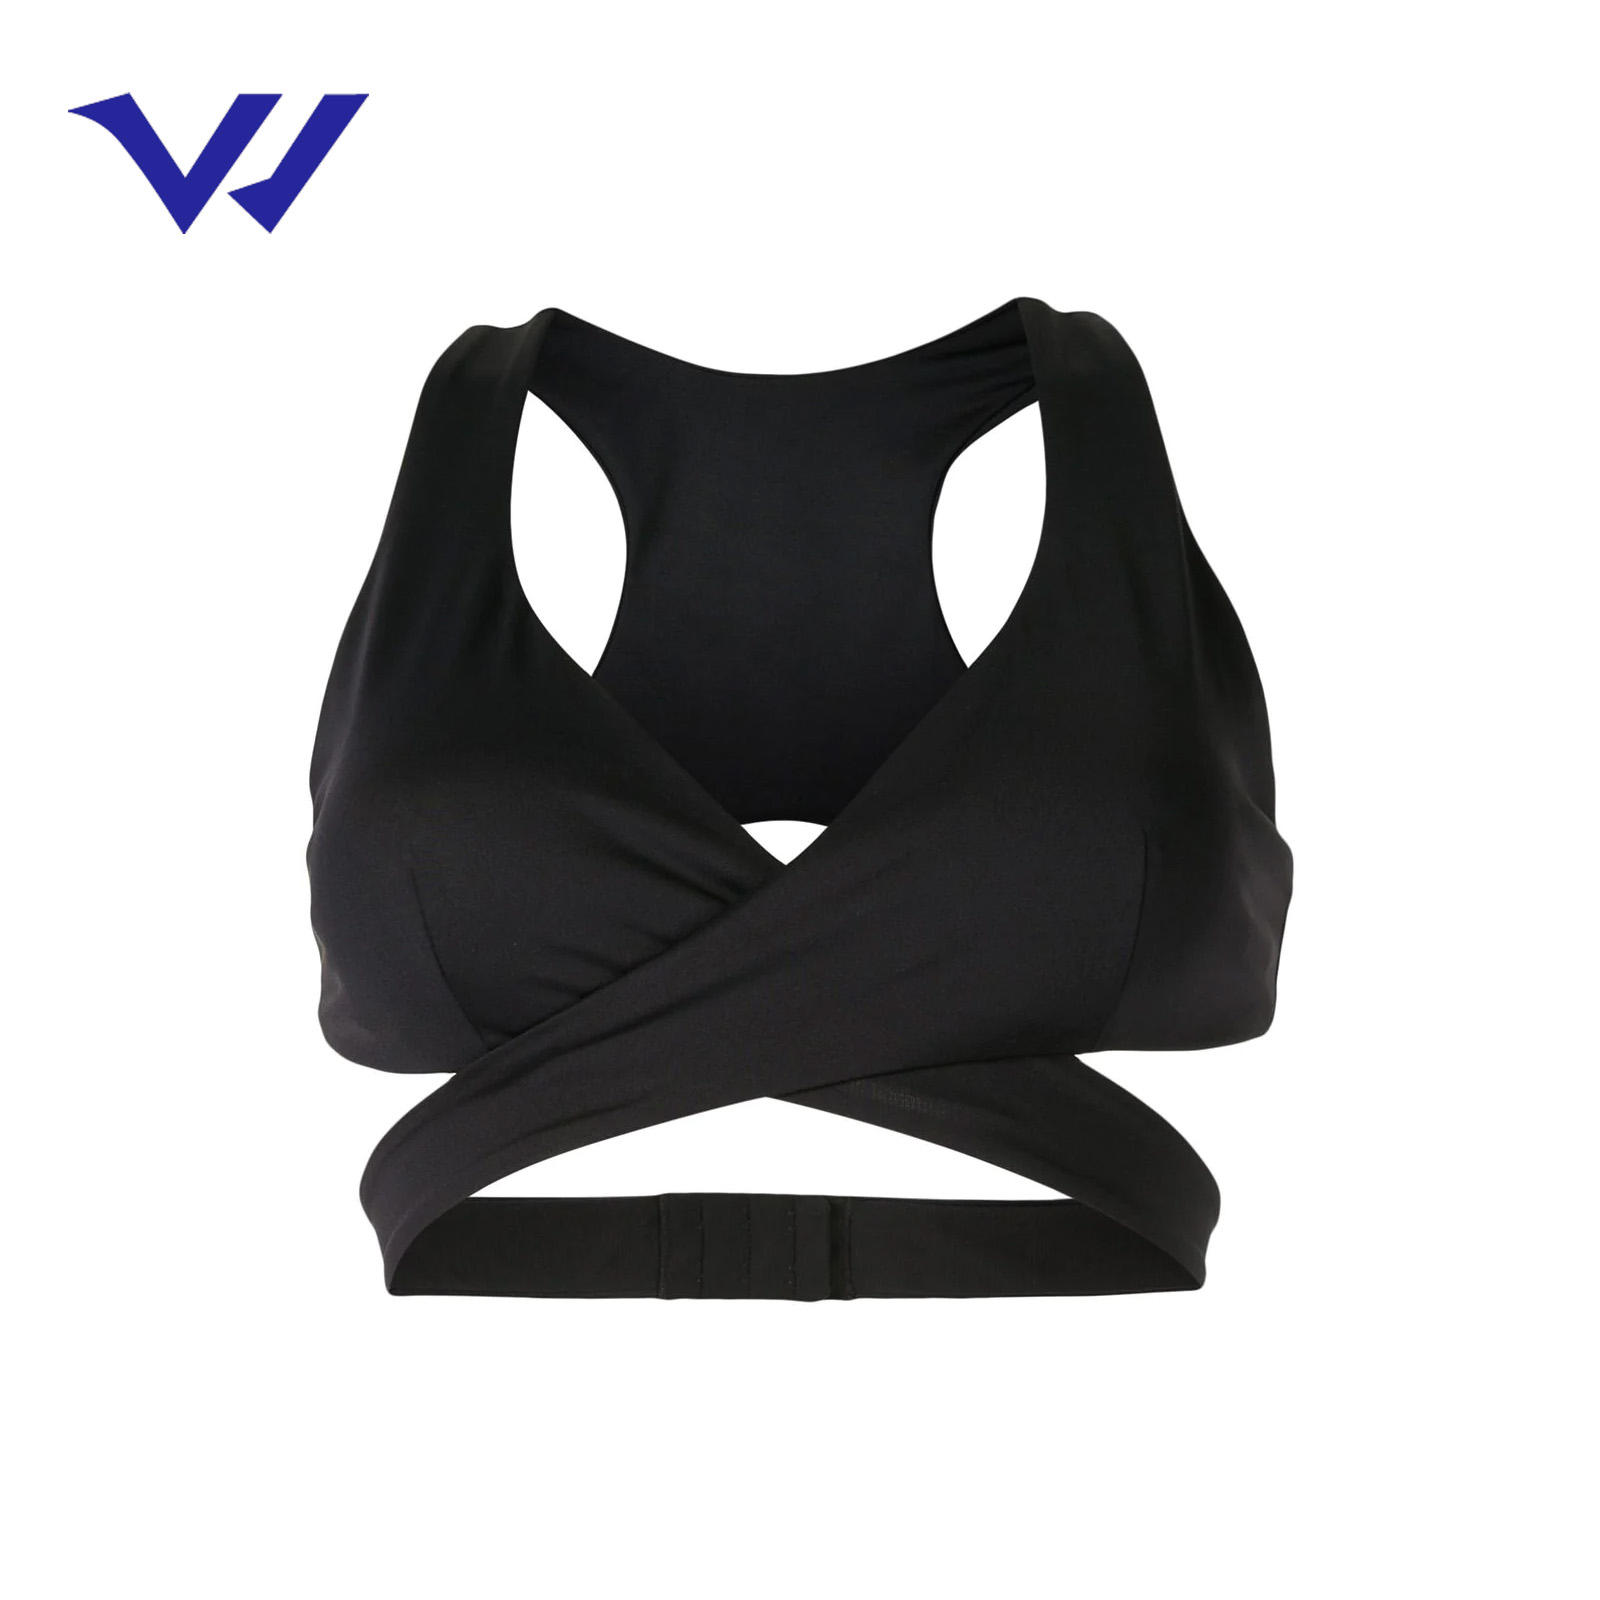 CUSTOM Women CROP TOP breathable Sports bra Flightmode System Fitness Clothing Tank sports gym women's sport bra running